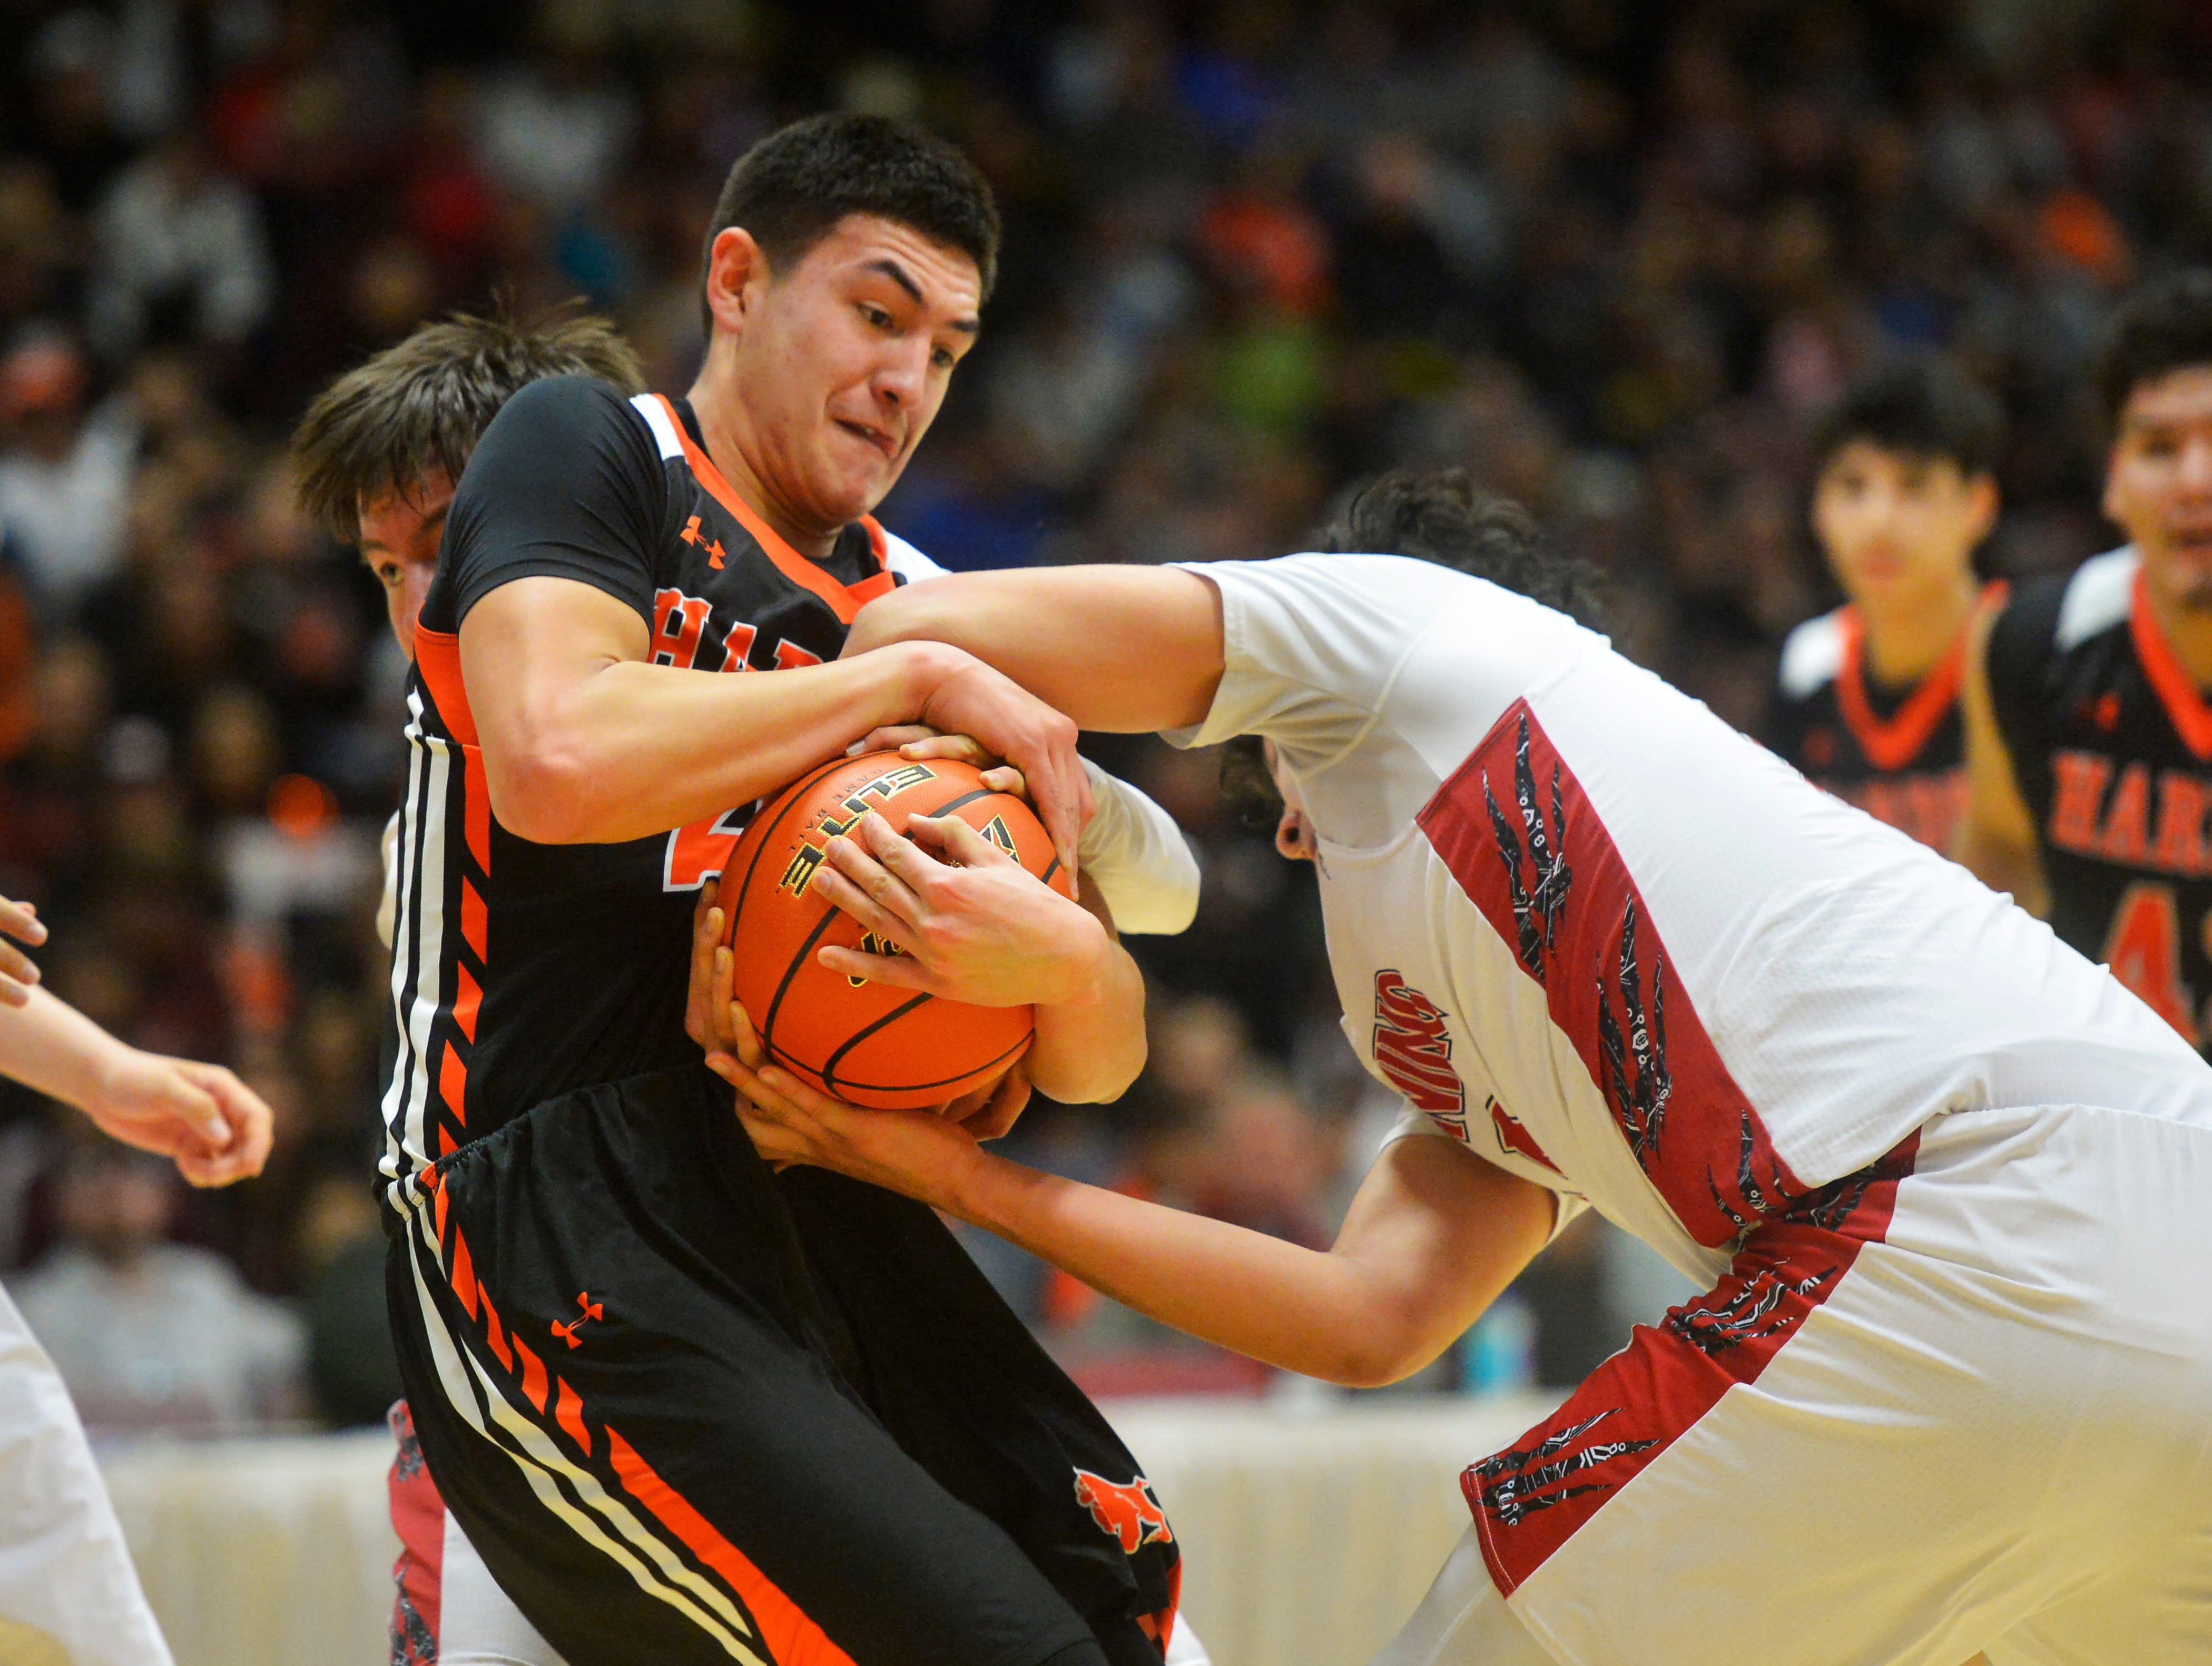 Hardin's Cayden Redfield battles for possession with Browning's Tyree Whitcomb during the Class A State Basketball Tournament in the Four Seasons Arena, Thursday.